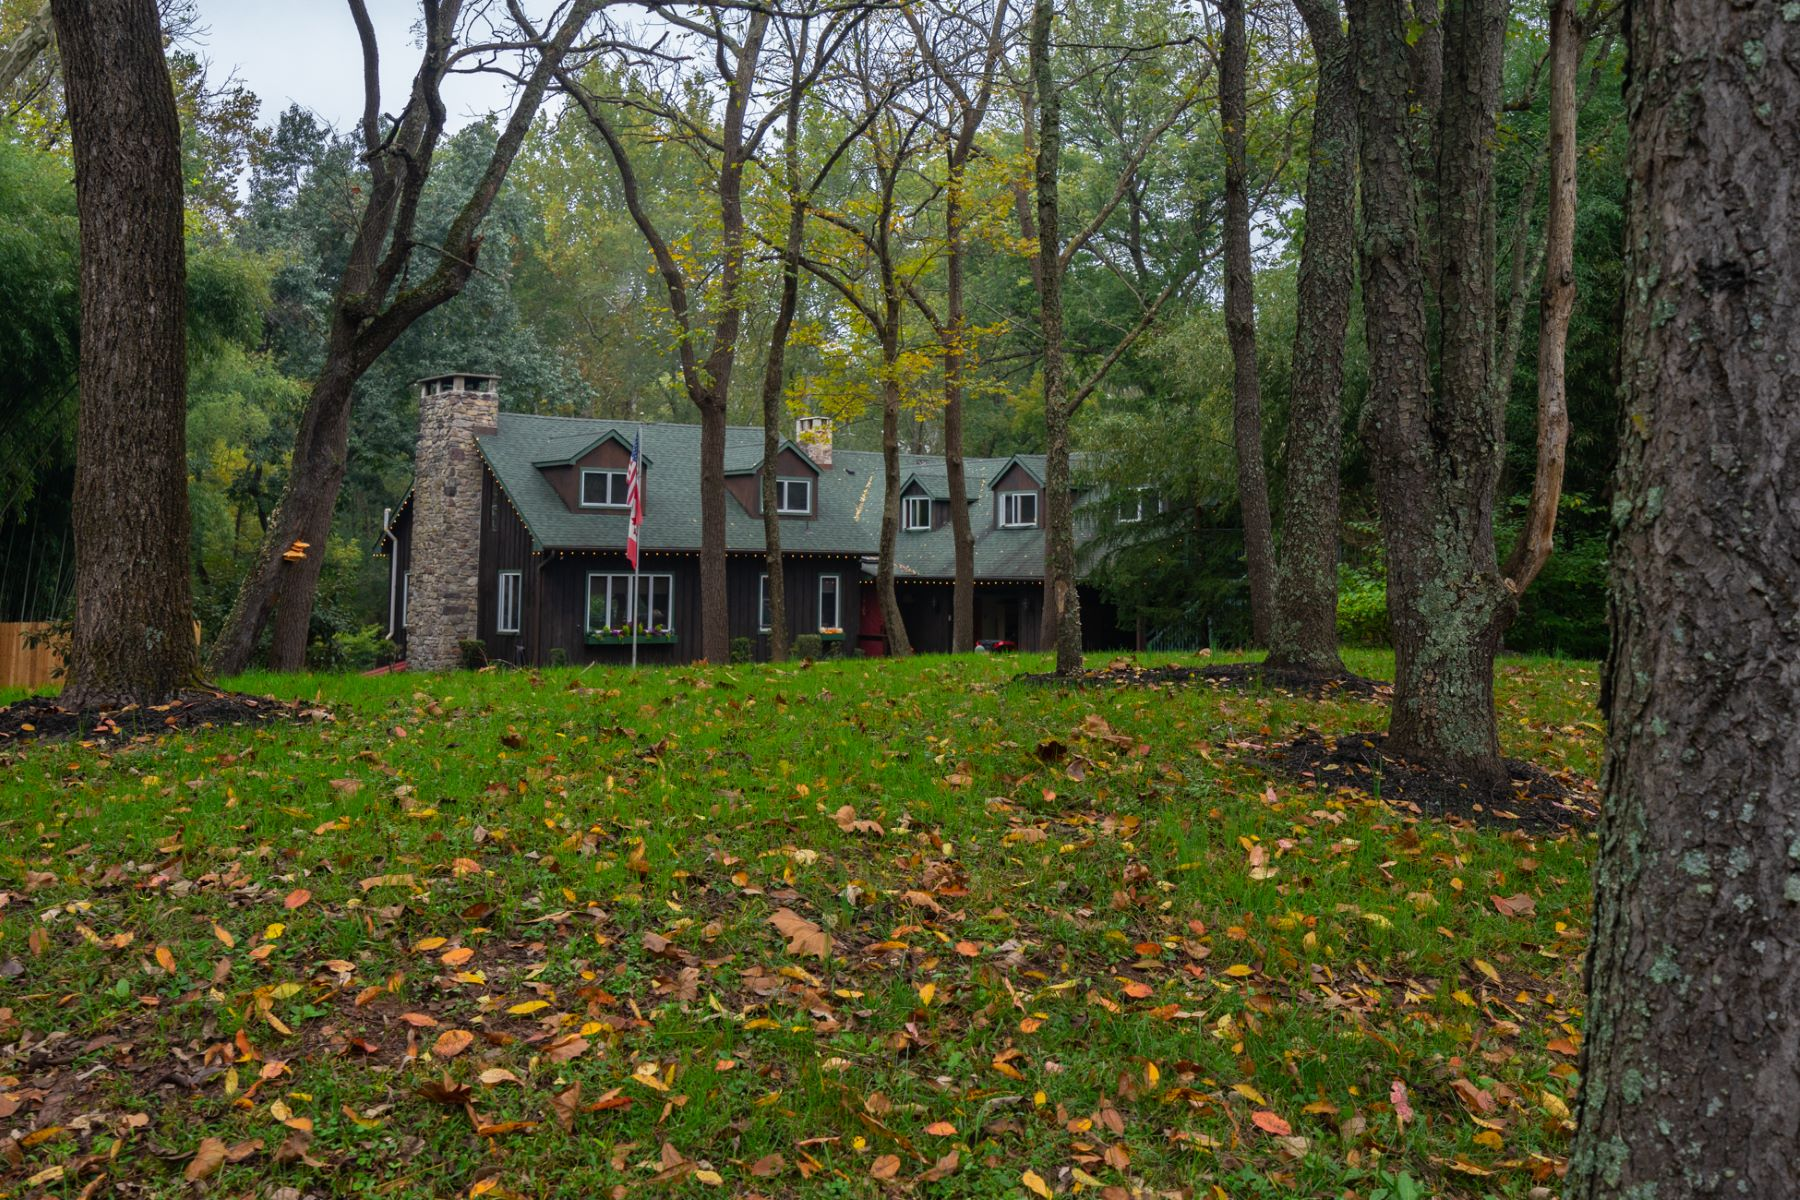 Single Family Home for Sale at A Rare Paradise In New Hope Borough 105 Stoney Hill Road, New Hope, Pennsylvania 18938 United States